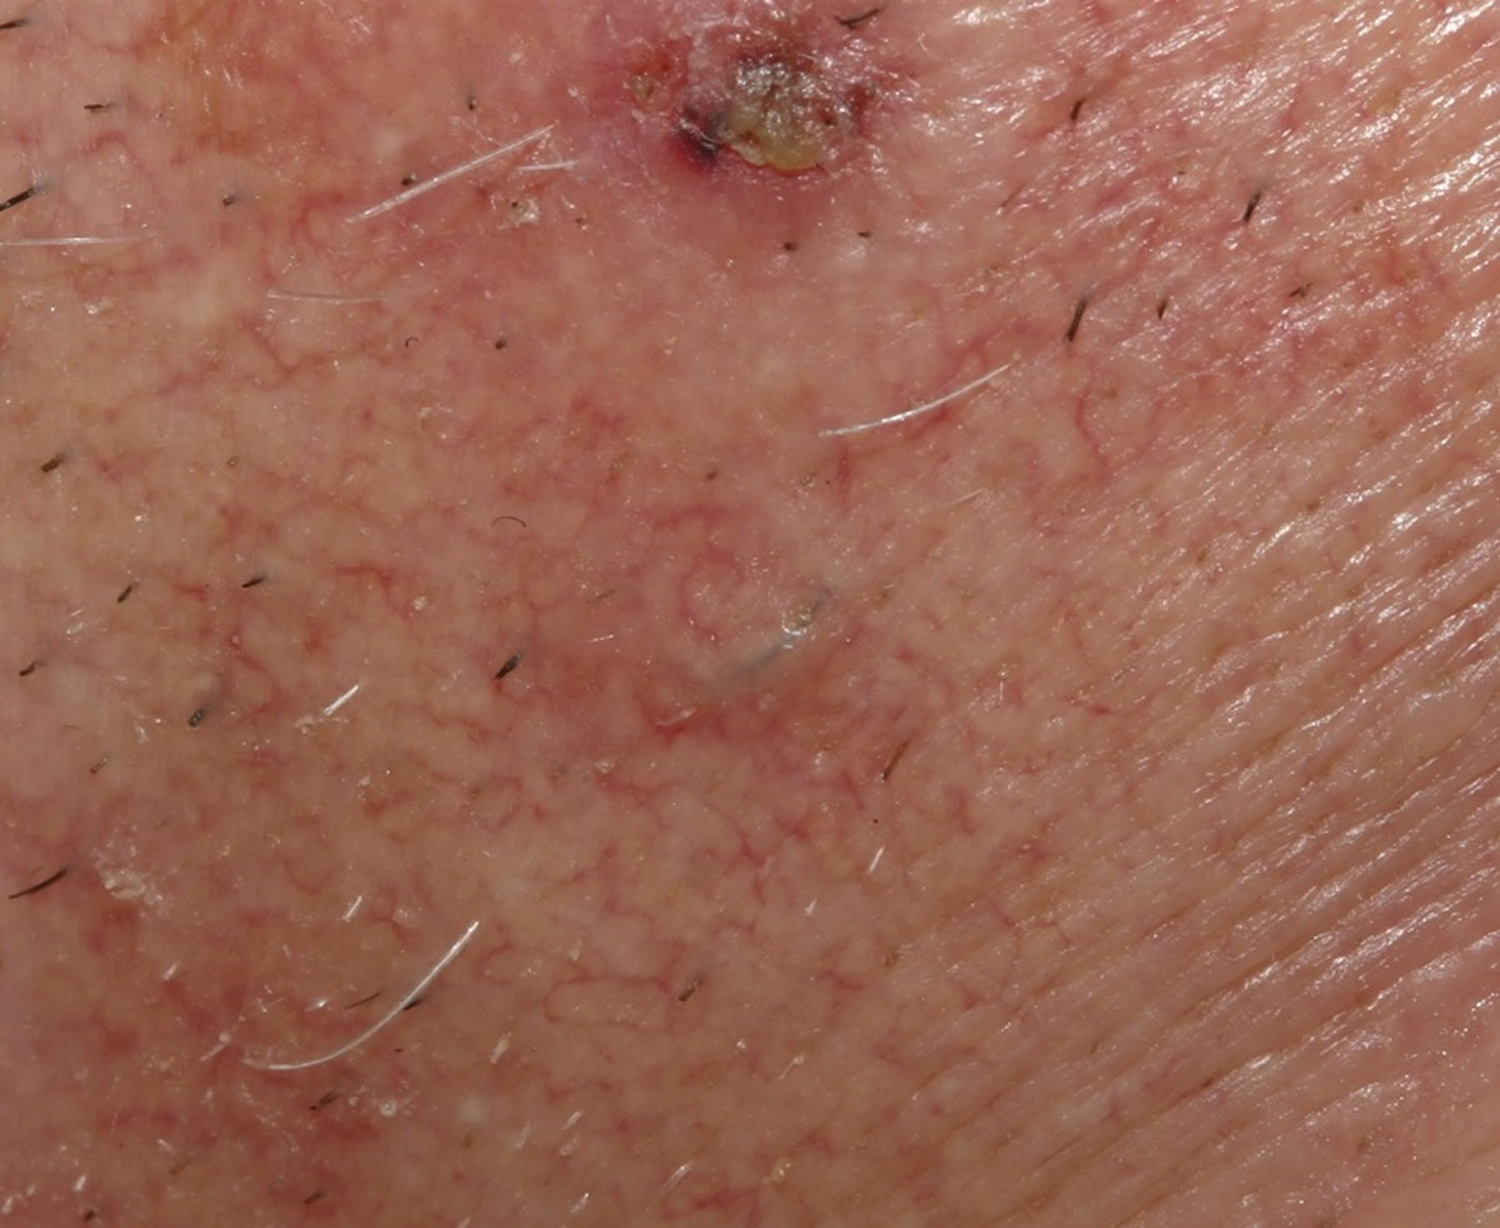 Ingrown hair vaginal area